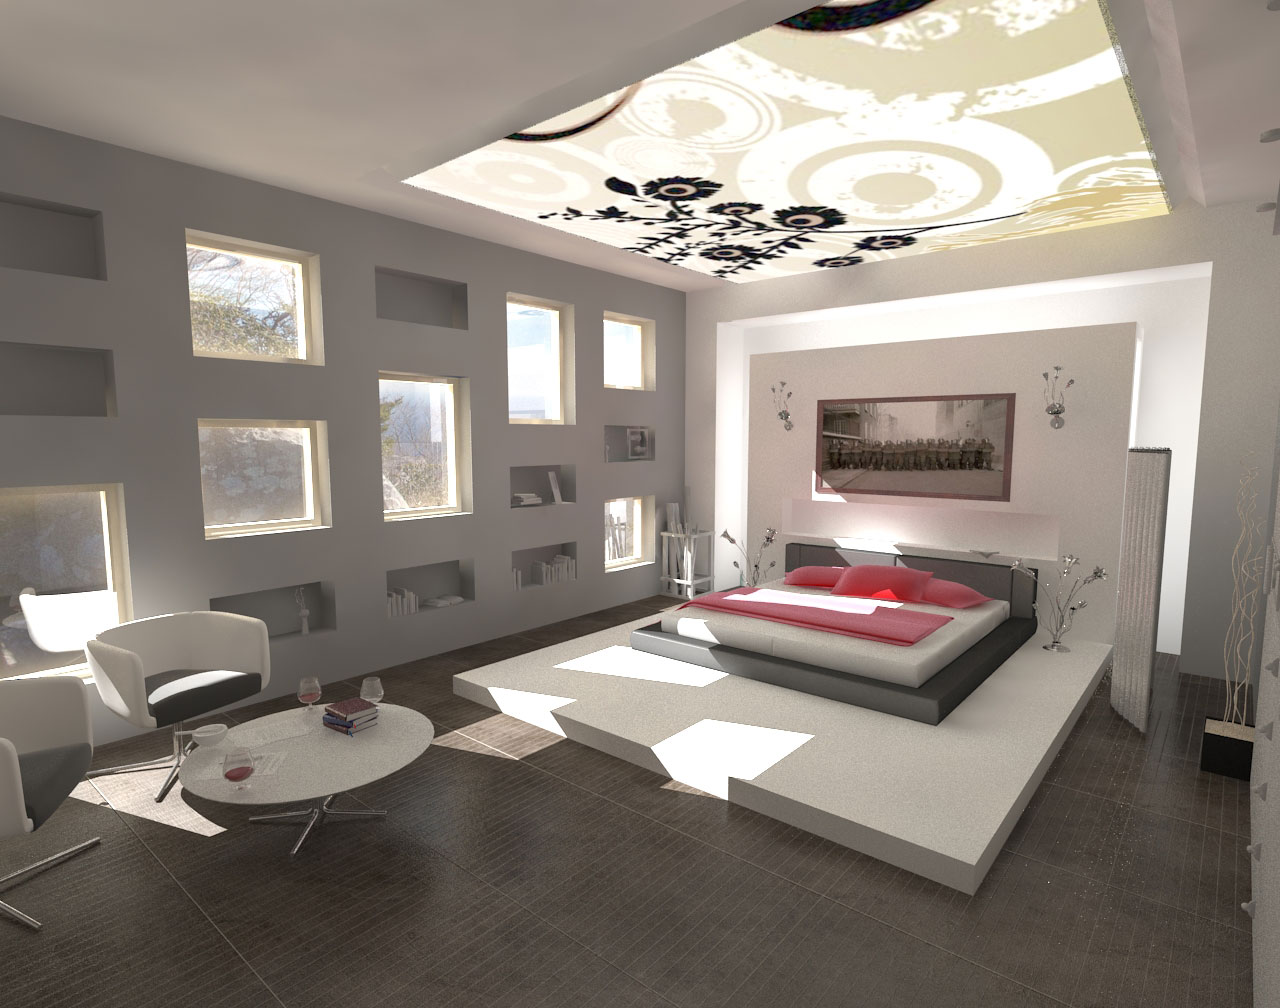 Decorations minimalist design modern bedroom interior for Interior decoration for bedroom pictures